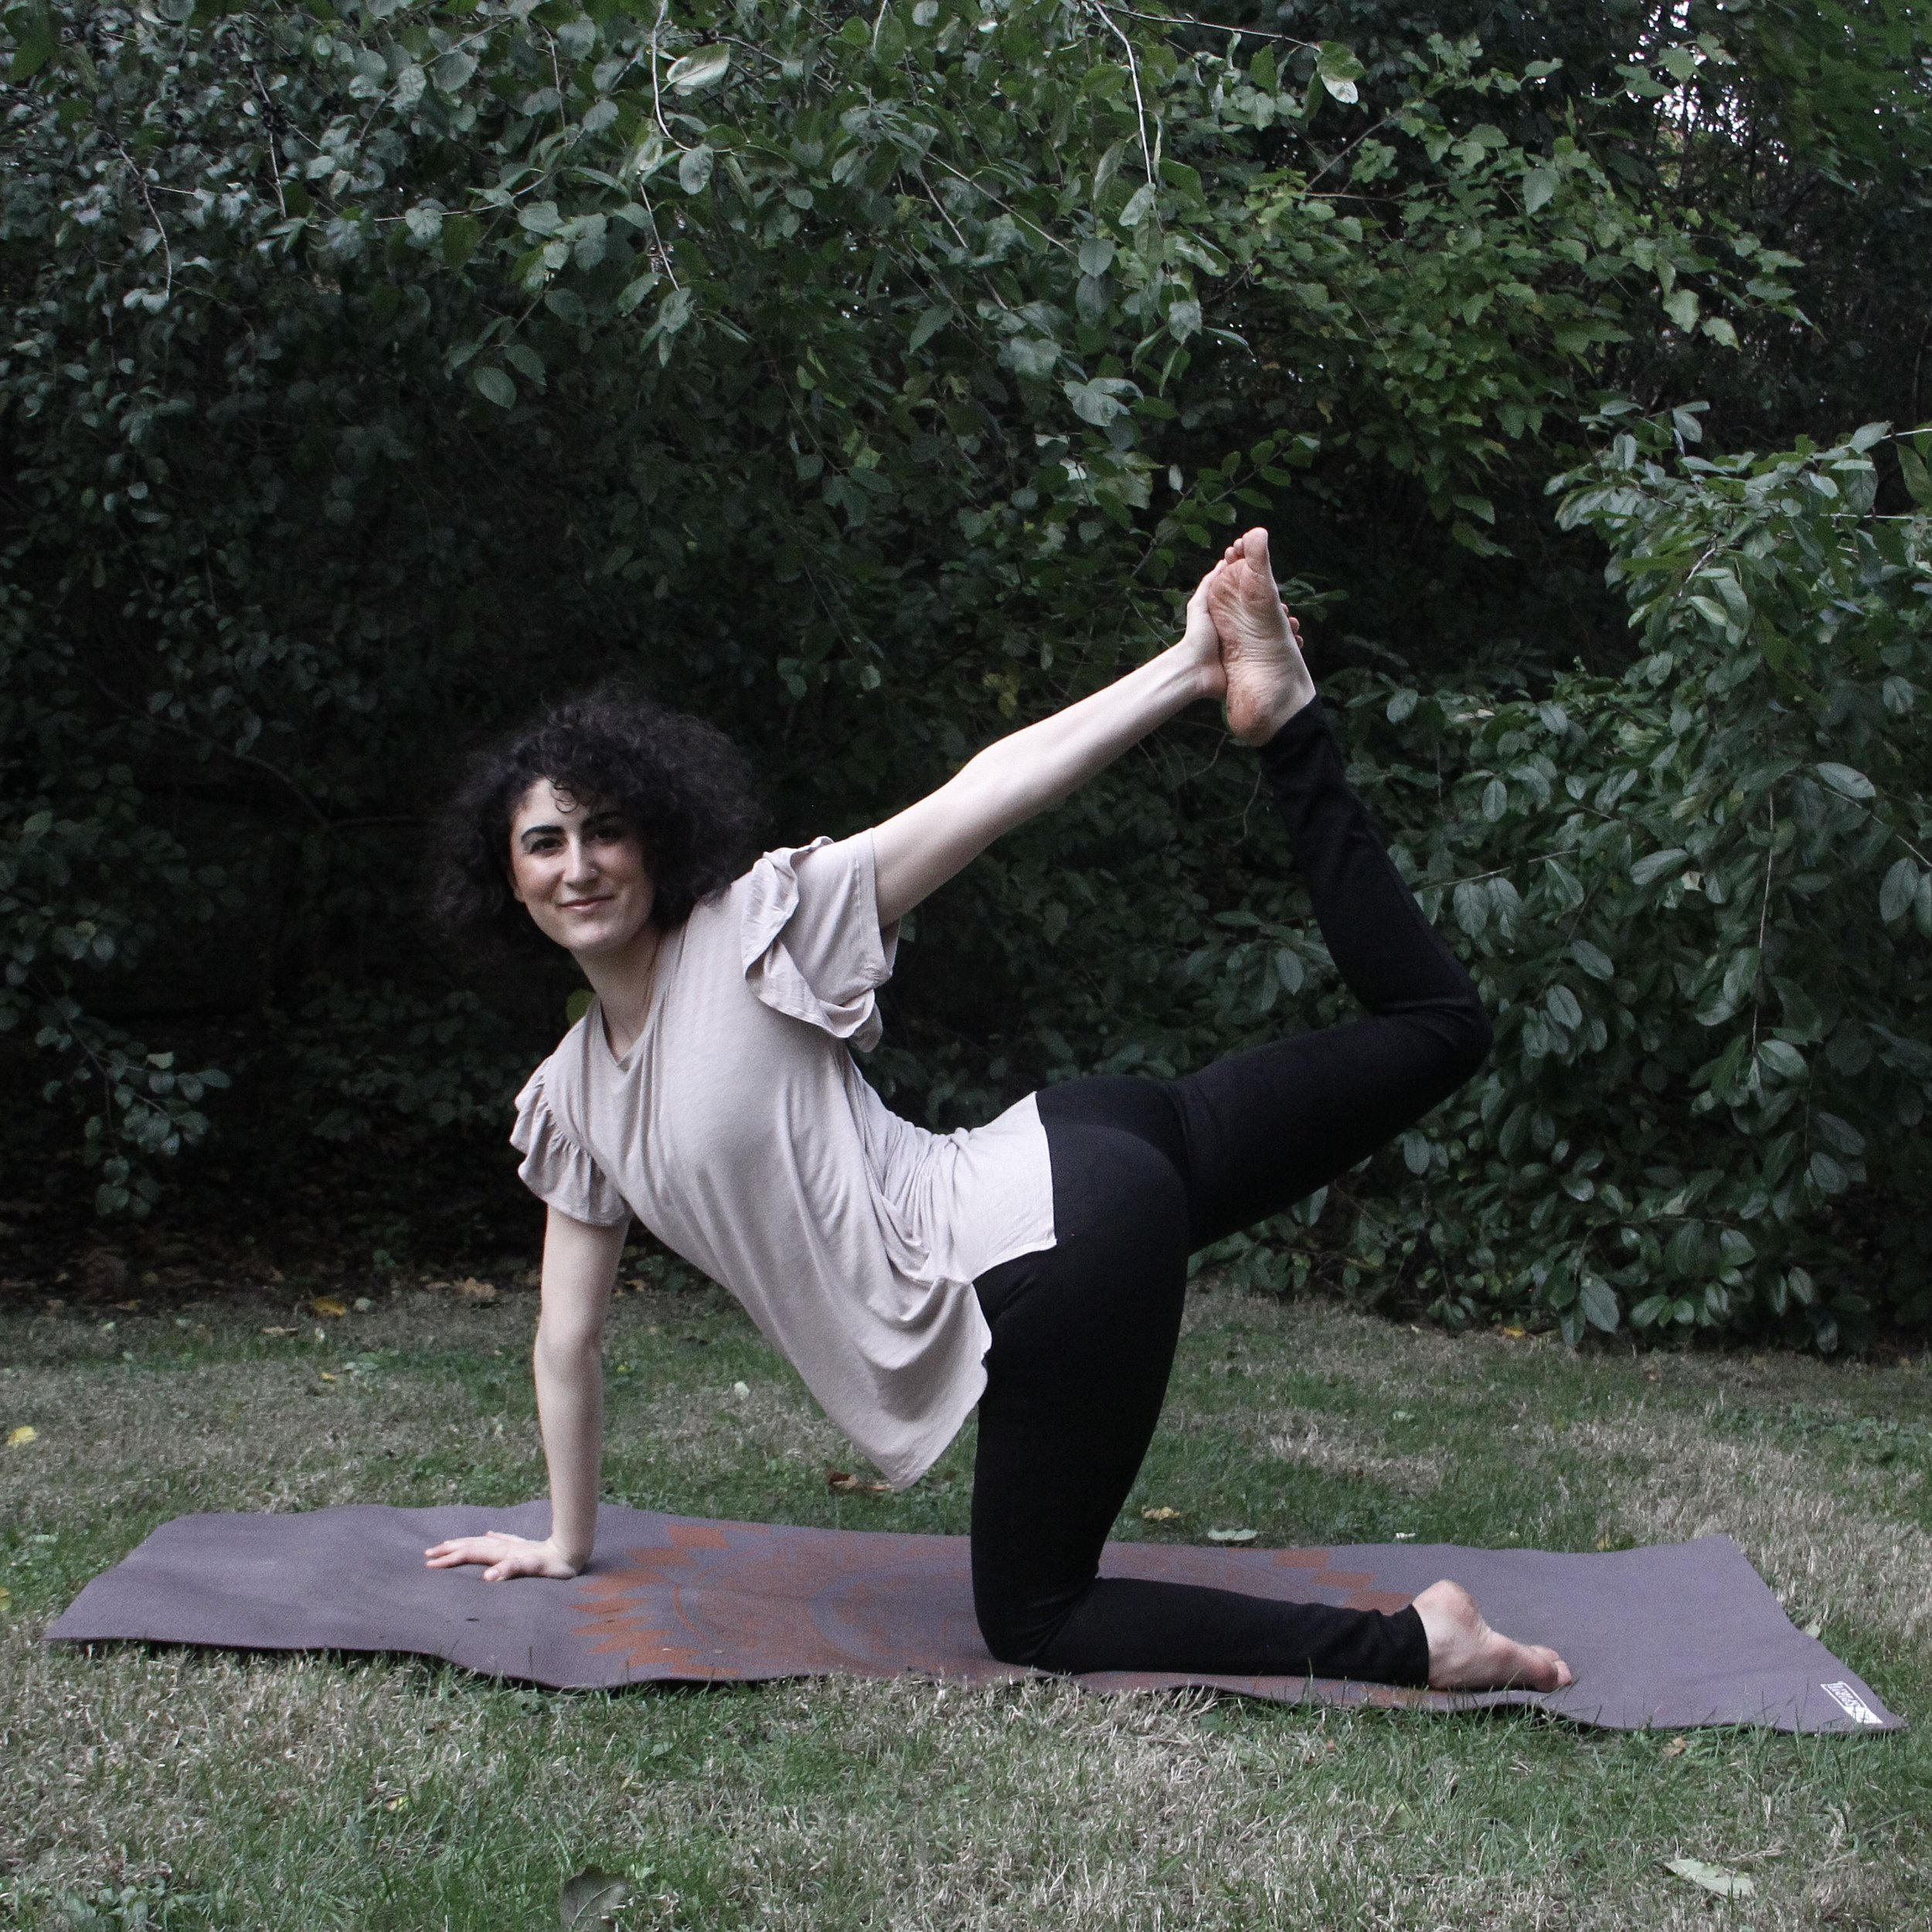 MEET THE INSTRUCTOR... - Hi! I'm Rachel Marie White. I am a certified yoga teacher and chronic illness warrior. For nearly a decade, I have been living with chronic pain and chronic illness symptoms. Through all of the unpredictable ups and downs, I have learned how to care for my mind, body and spirit with yoga. Sharing this healing practice with others has become my life's passion. I've already helped thousands of chronic warriors to discover yoga practices that really work, and I would love to help you do the same!